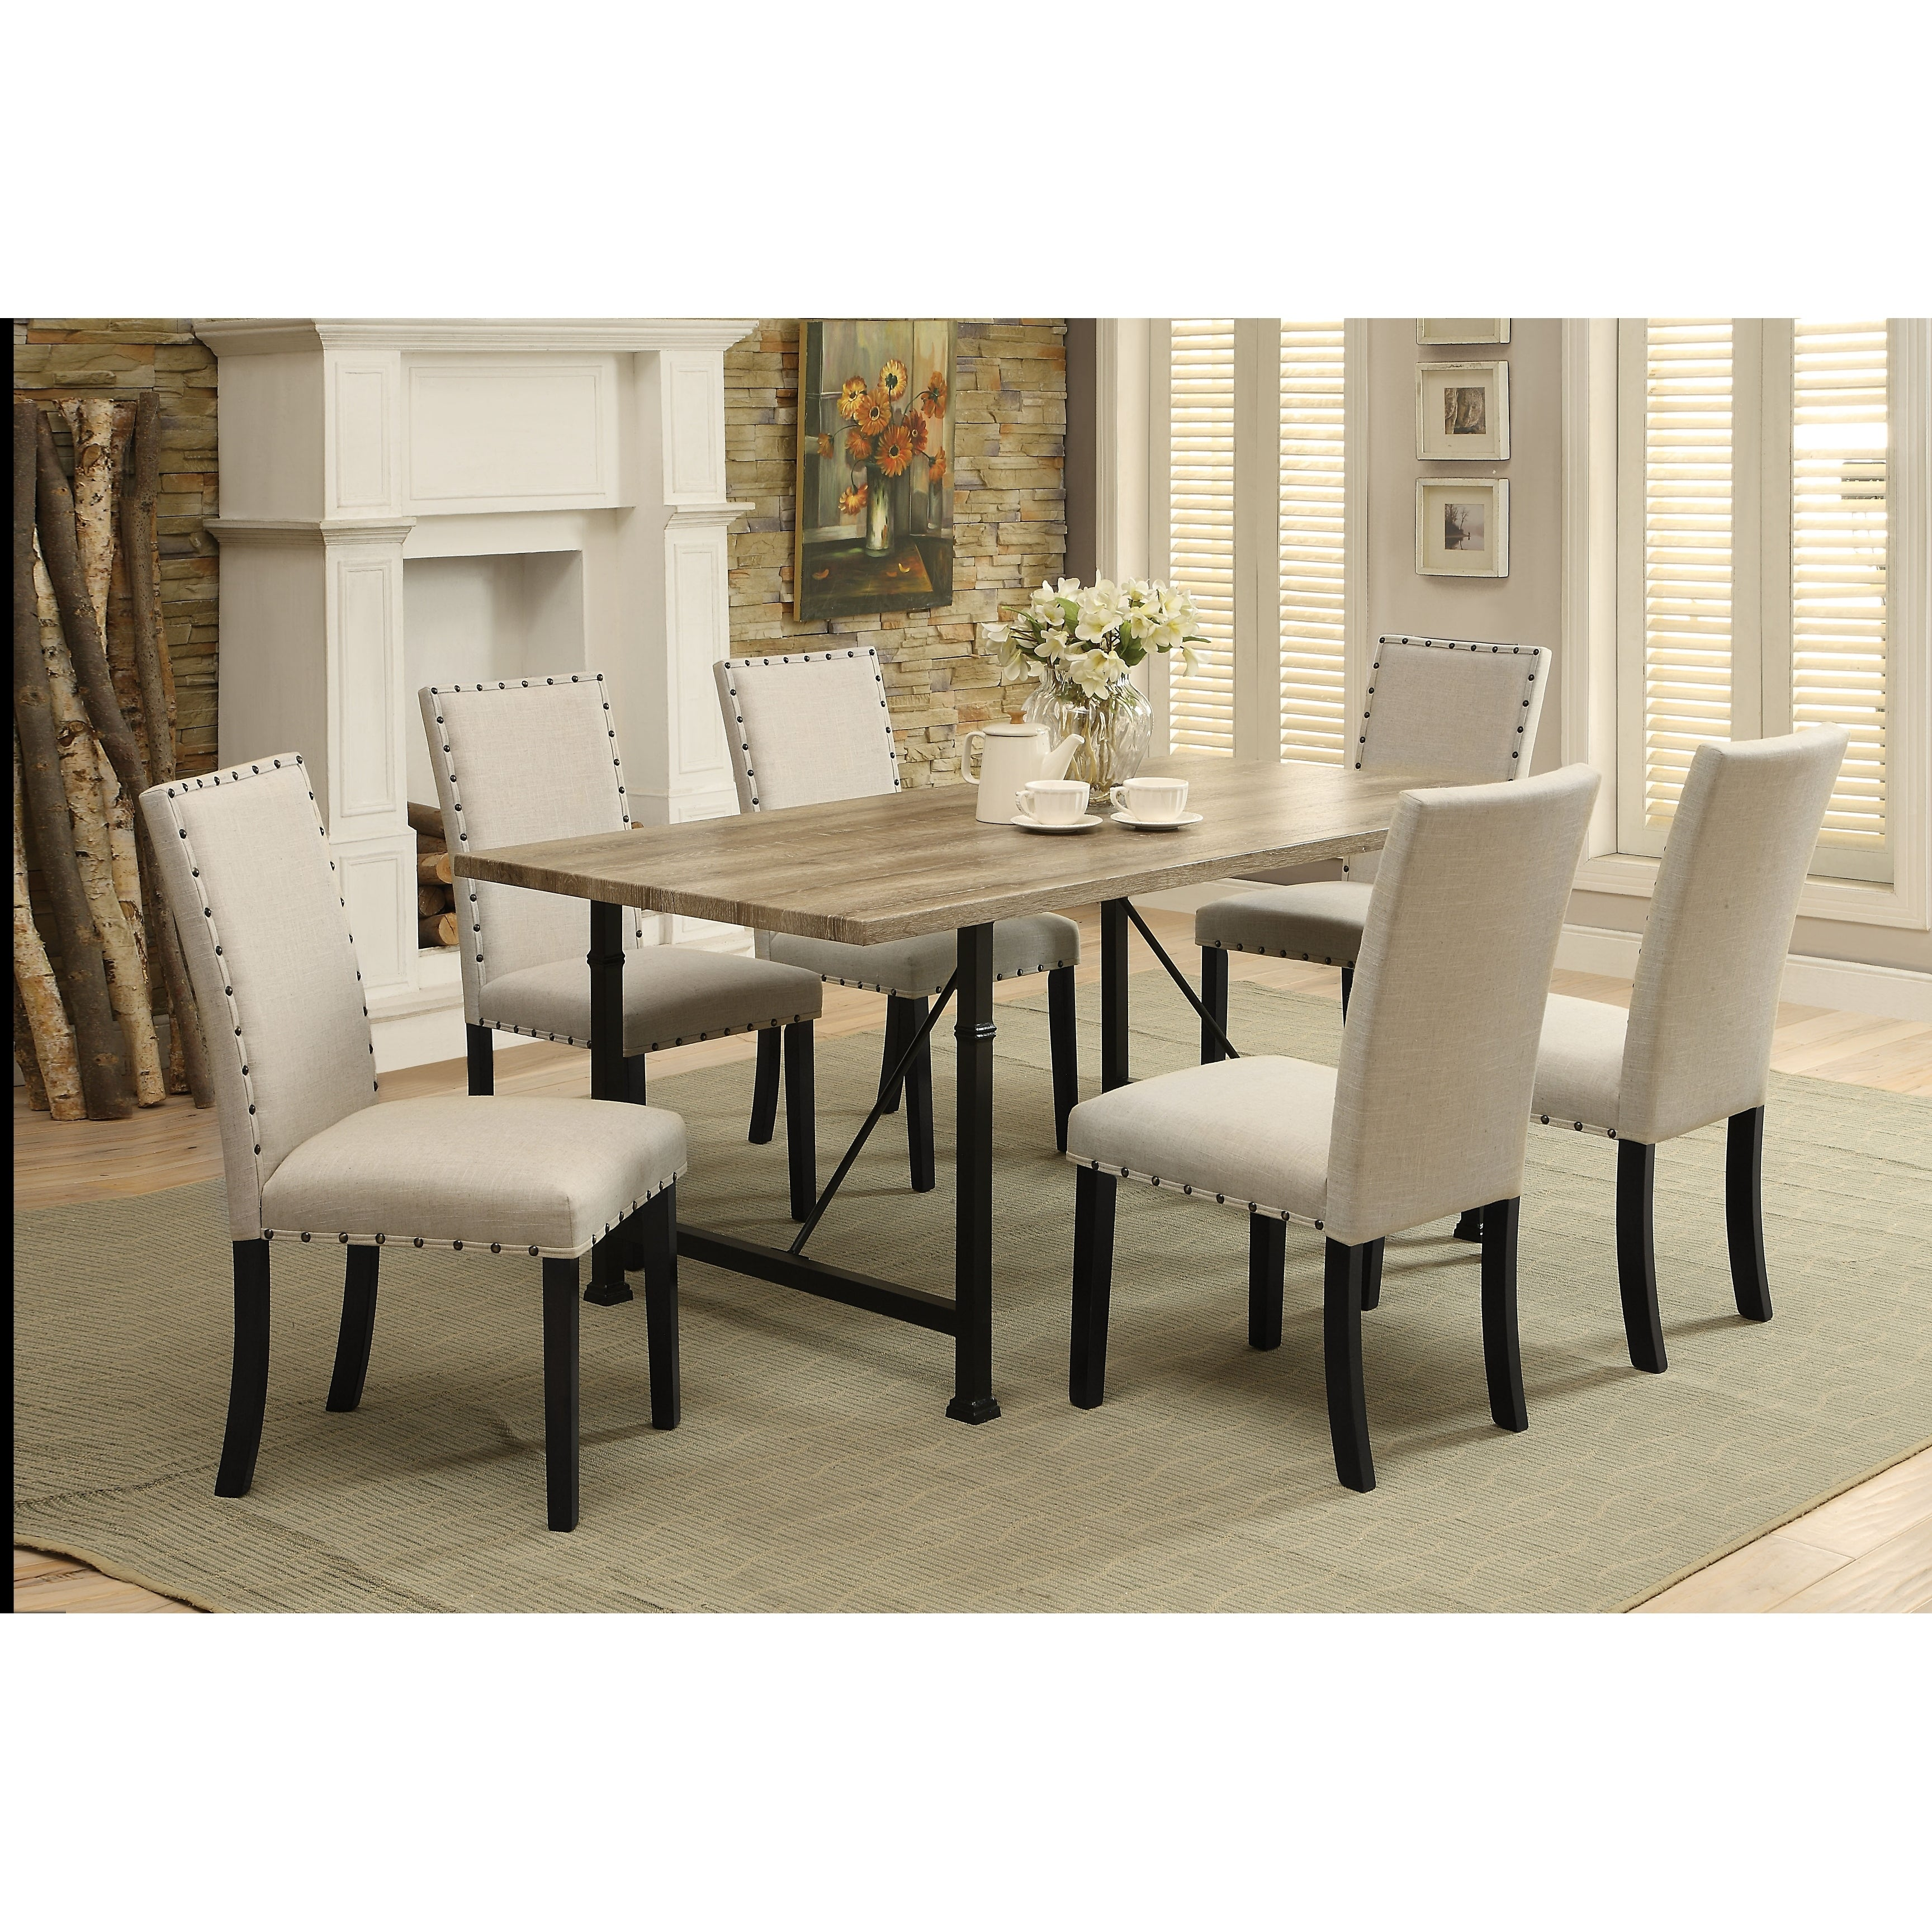 Shop Metal Framed Dining Table with Smooth Wooden Top, Black and